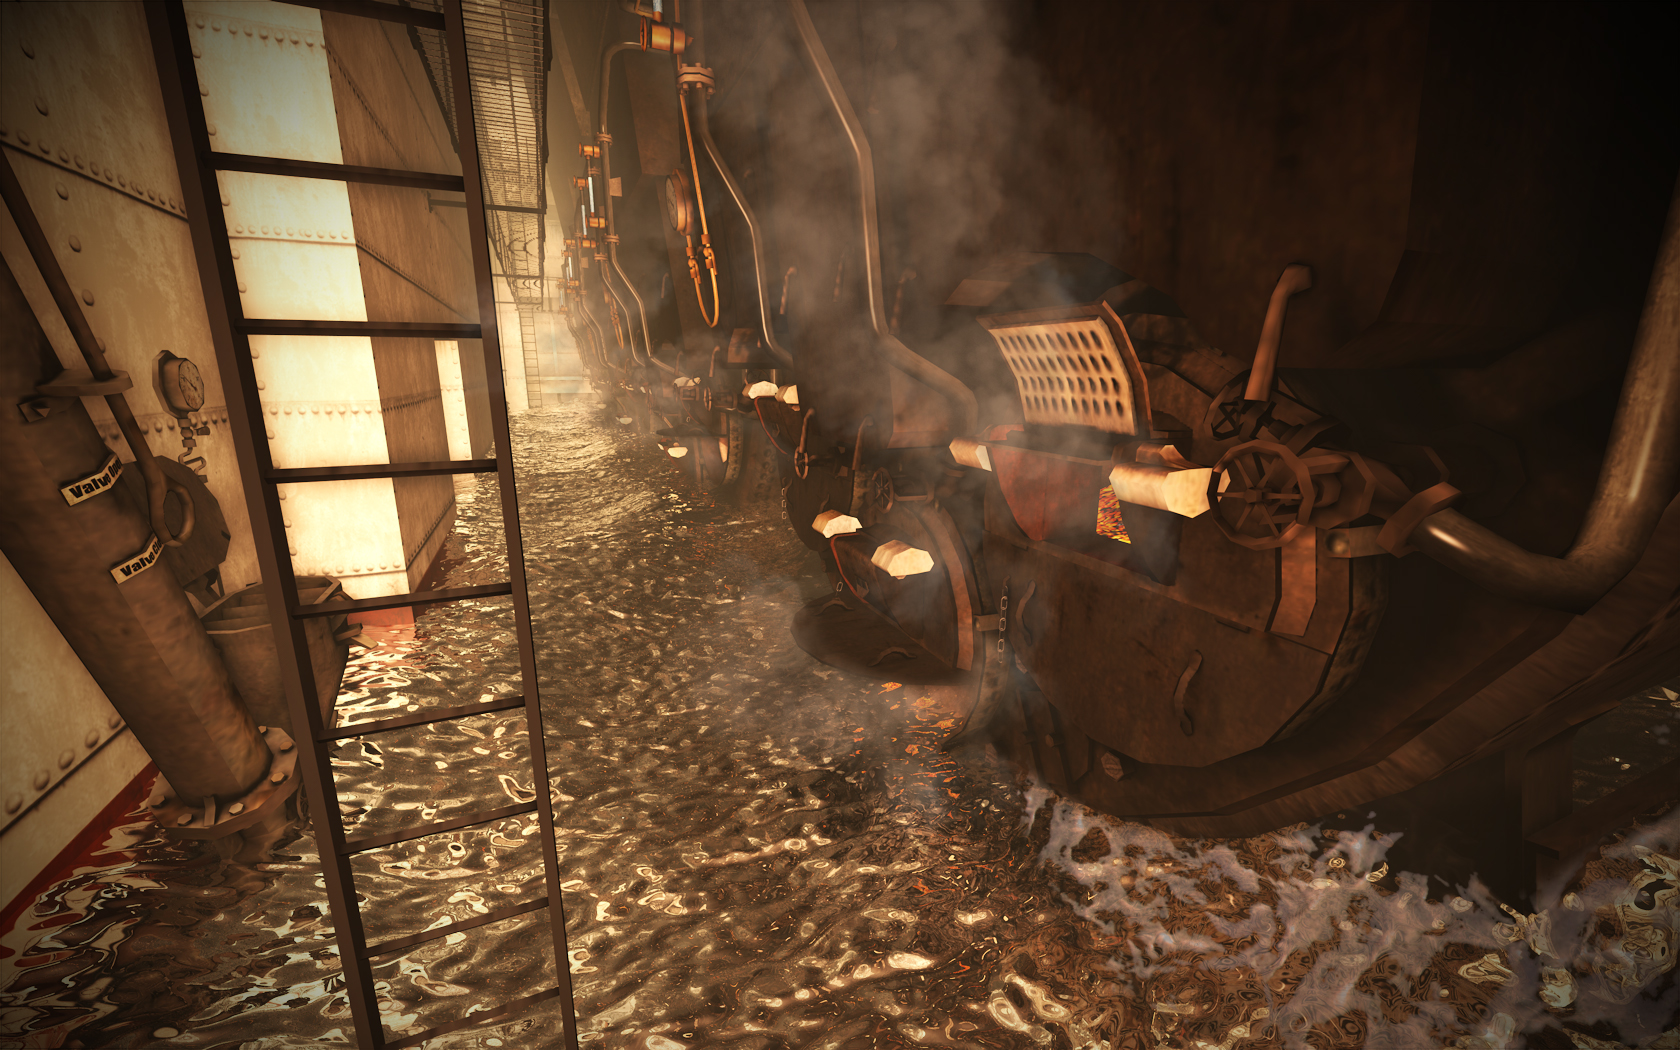 Boiler room flooding render image - Mafia Titanic Mod for Mafia: The City of Lost Heaven - Mod DB